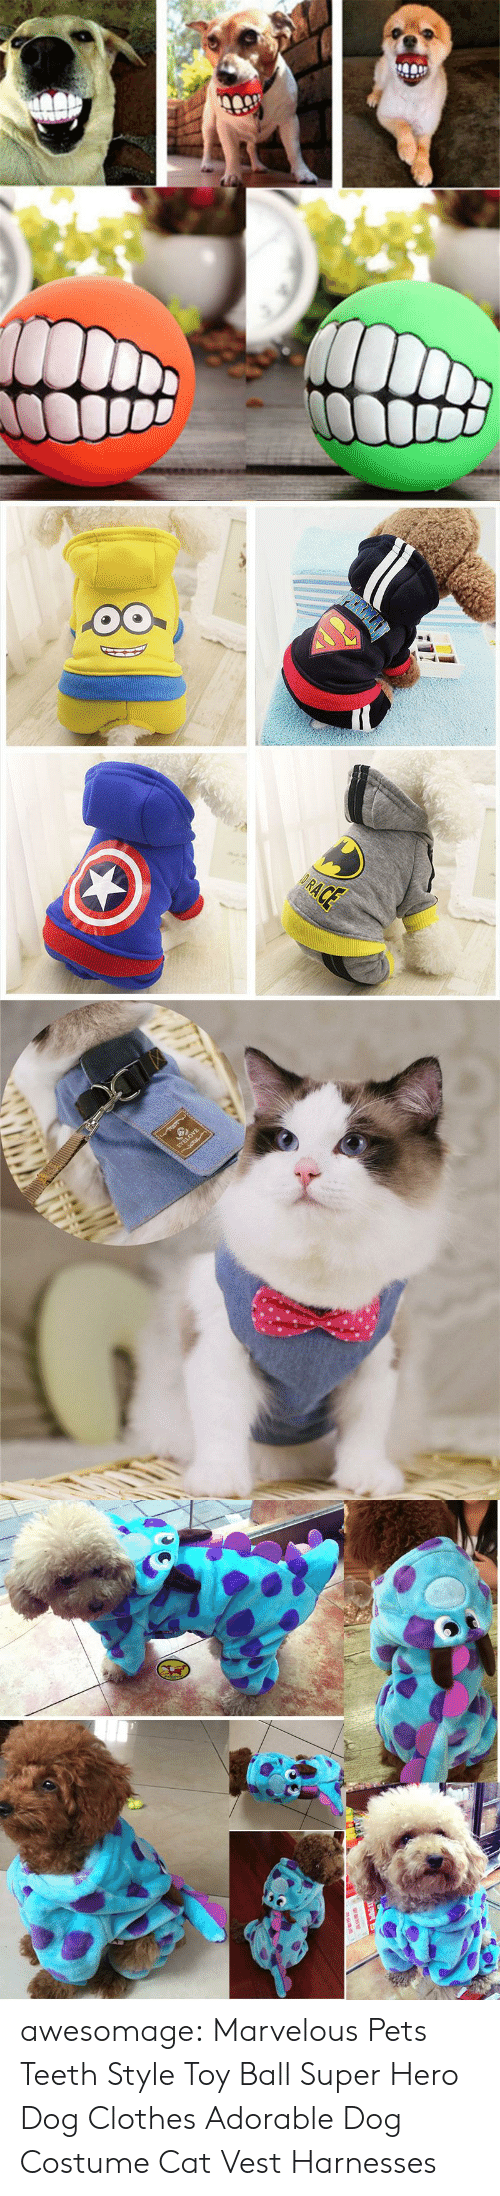 Marvelous: awesomage:      Marvelous Pets Teeth Style Toy Ball     Super Hero Dog Clothes    Adorable Dog Costume    Cat Vest Harnesses